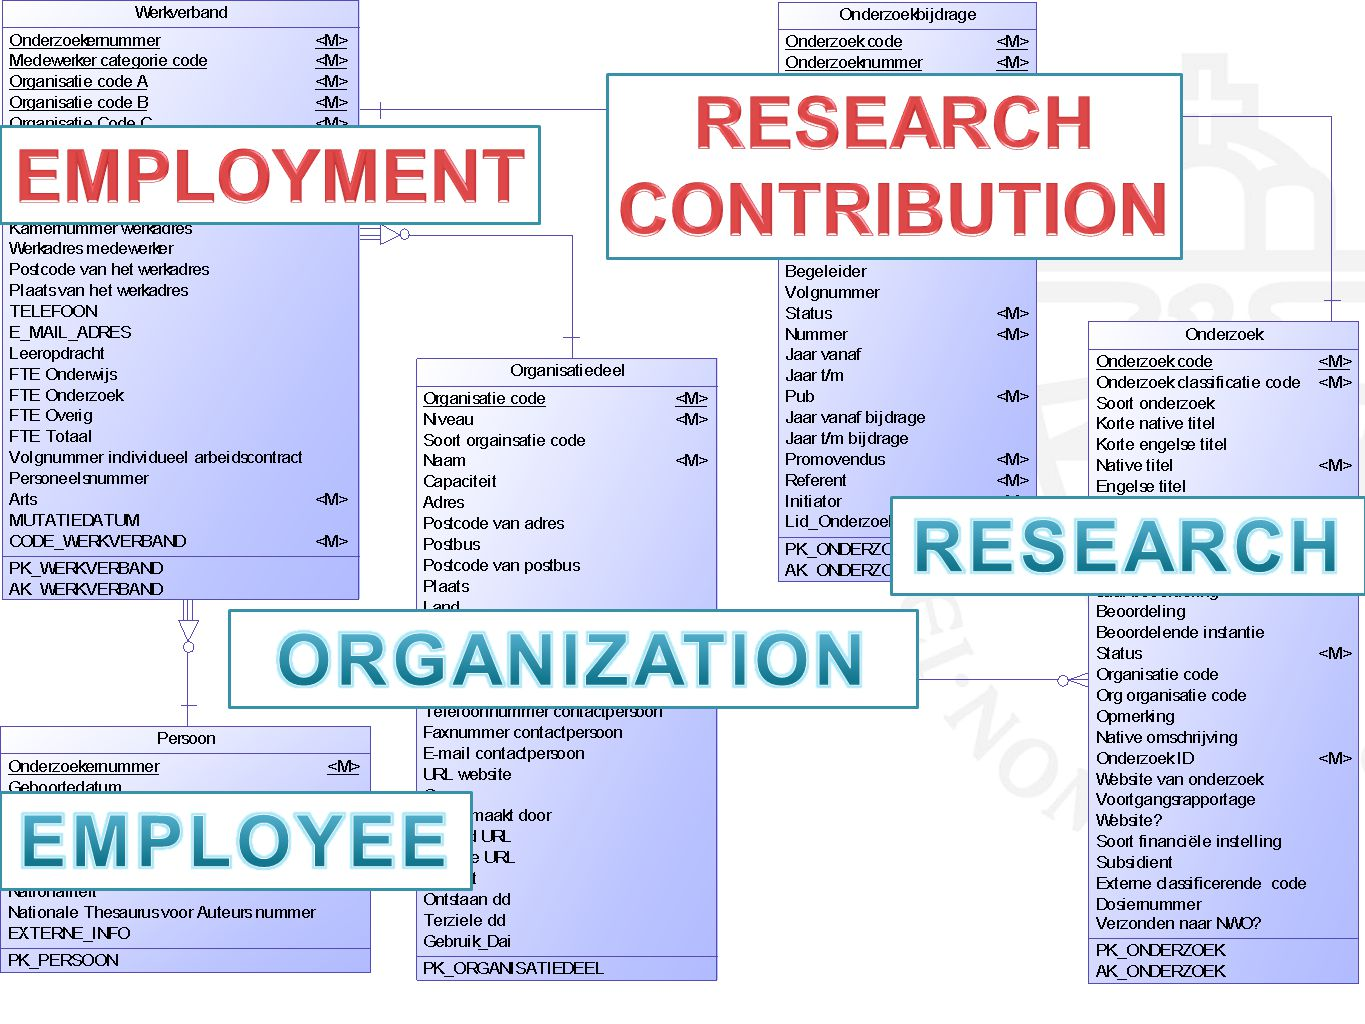 RESEARCH CONTRIBUTION EMPLOYMENT RESEARCH ORGANIZATION EMPLOYEE